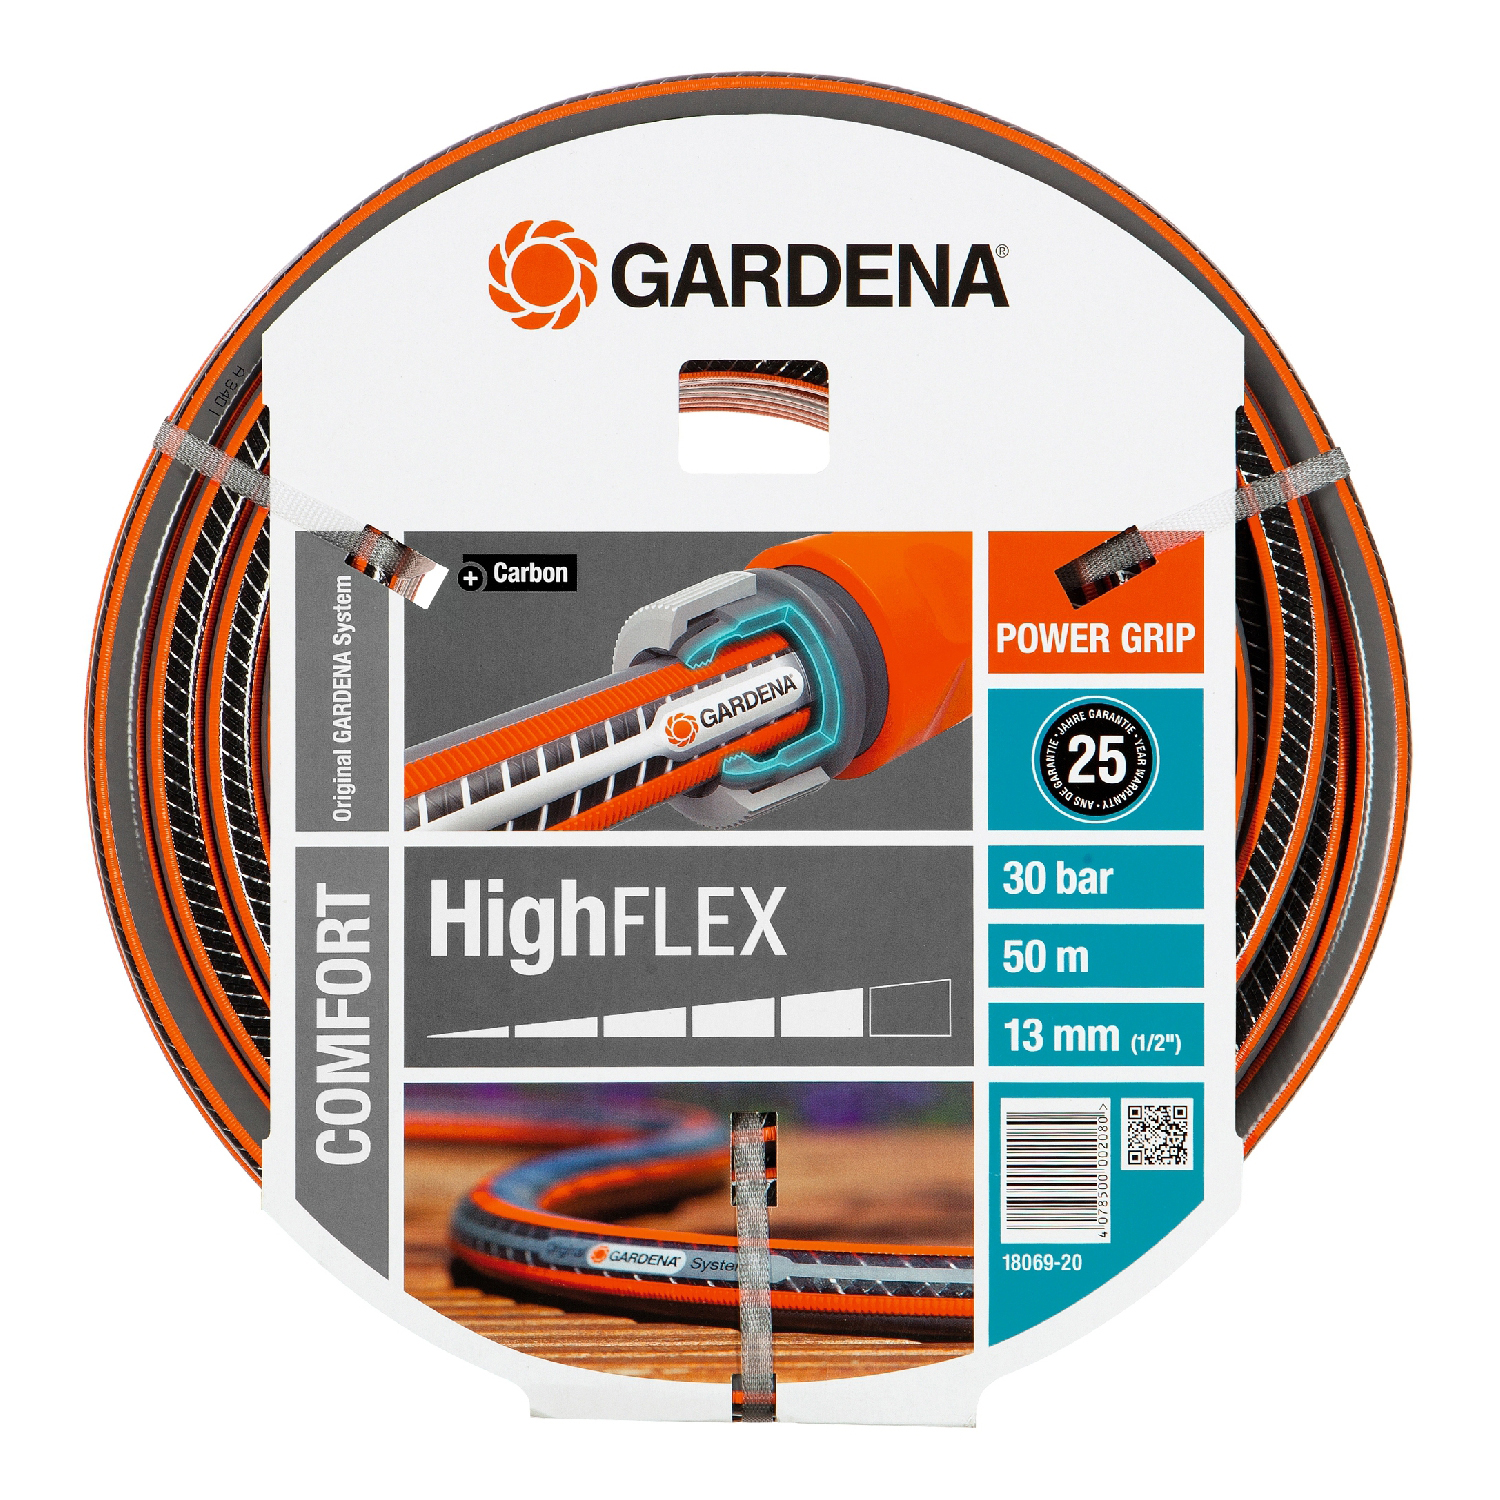 Hose поливочный GARDENA 18069-20.000.00 (Length 50 m, diameter 13mm (1/2) maximum pressure 30 bar, reinforced, светонепроницаем, resistant to ultraviolet radiation) dropper internal equalizing pressure gardena 2l h 10 pcs in blister home